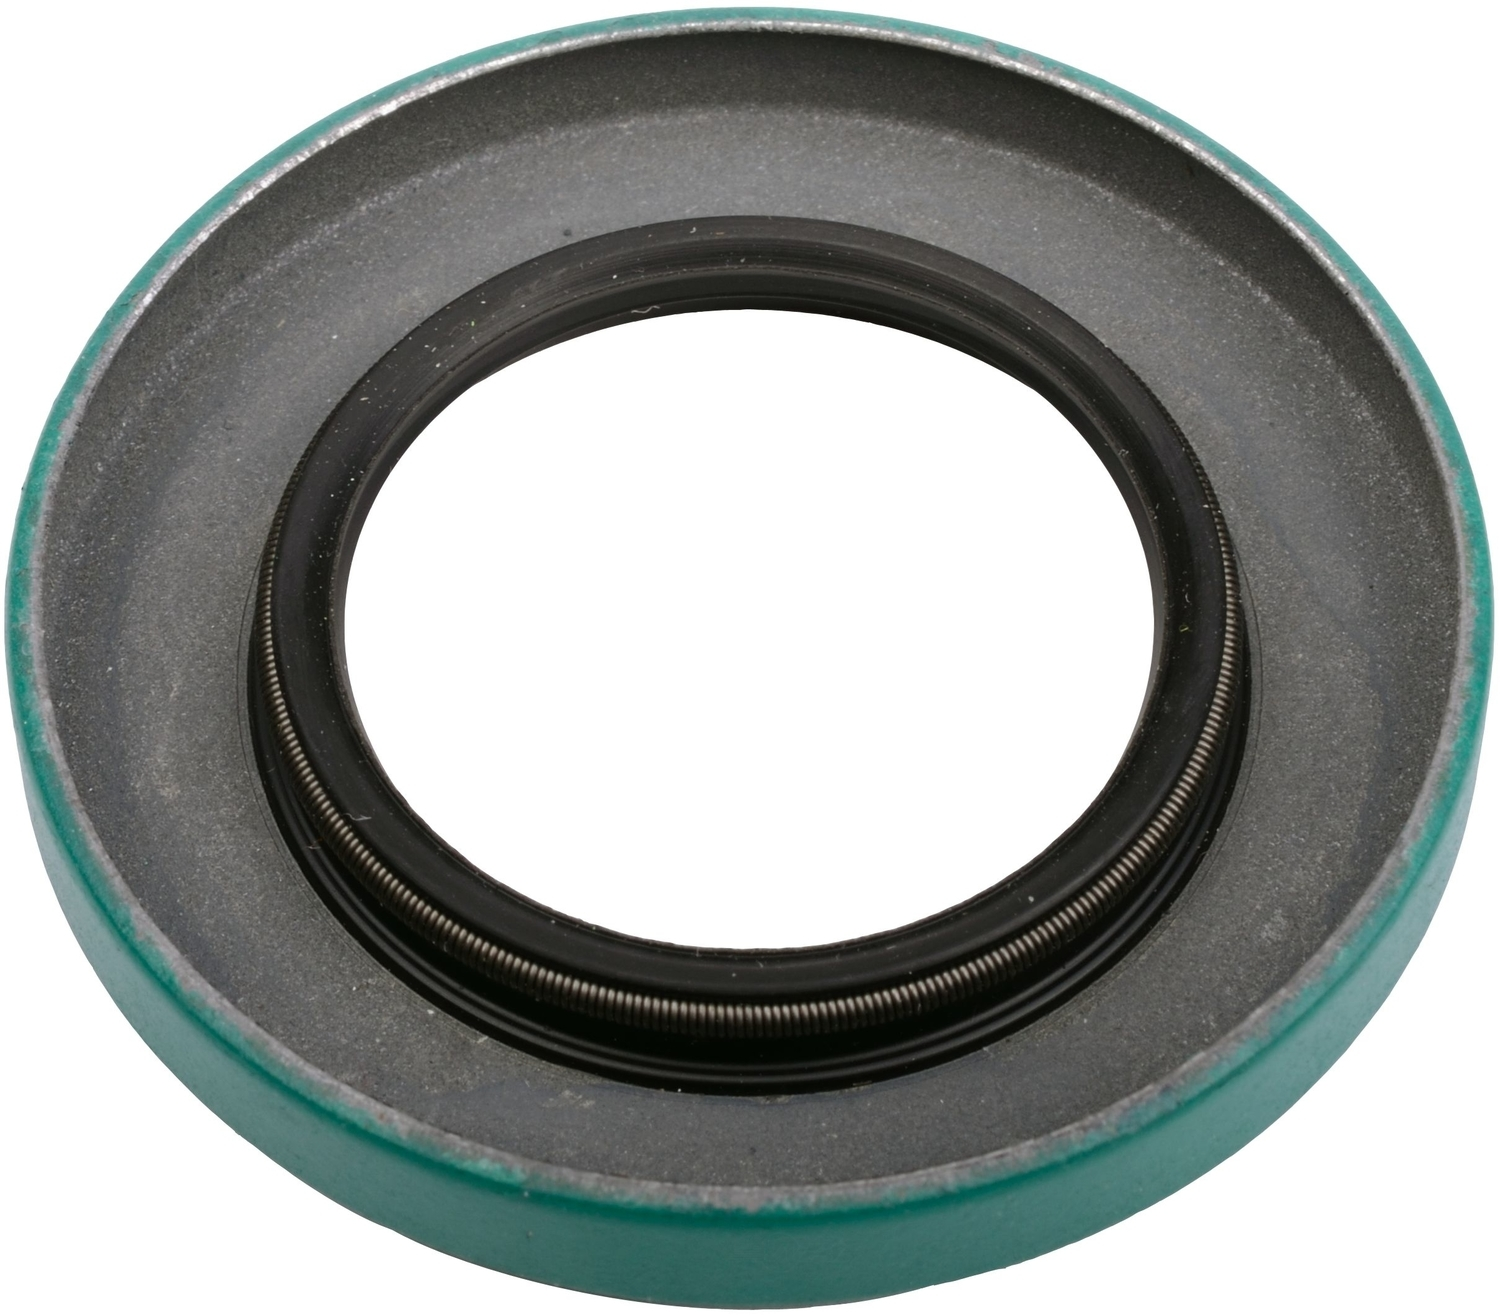 SKF (CHICAGO RAWHIDE) - Manual Trans Input Shaft Seal - SKF 7940